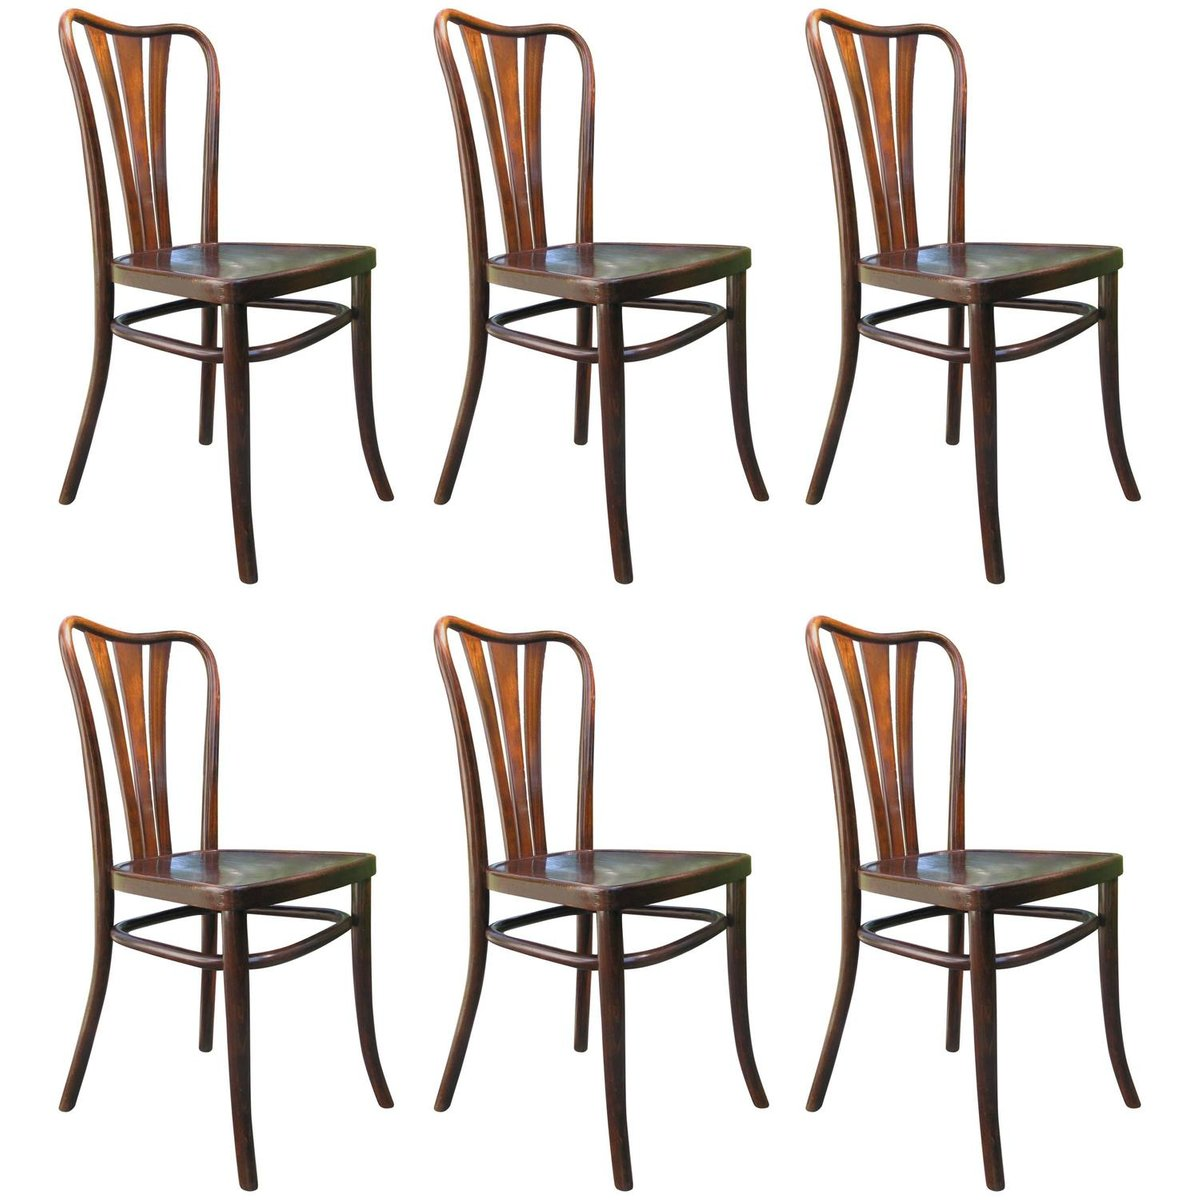 Vintage Dining Chairs from Thonet 1930s Set of 6 for sale at Pamono – Thonet Dining Chair